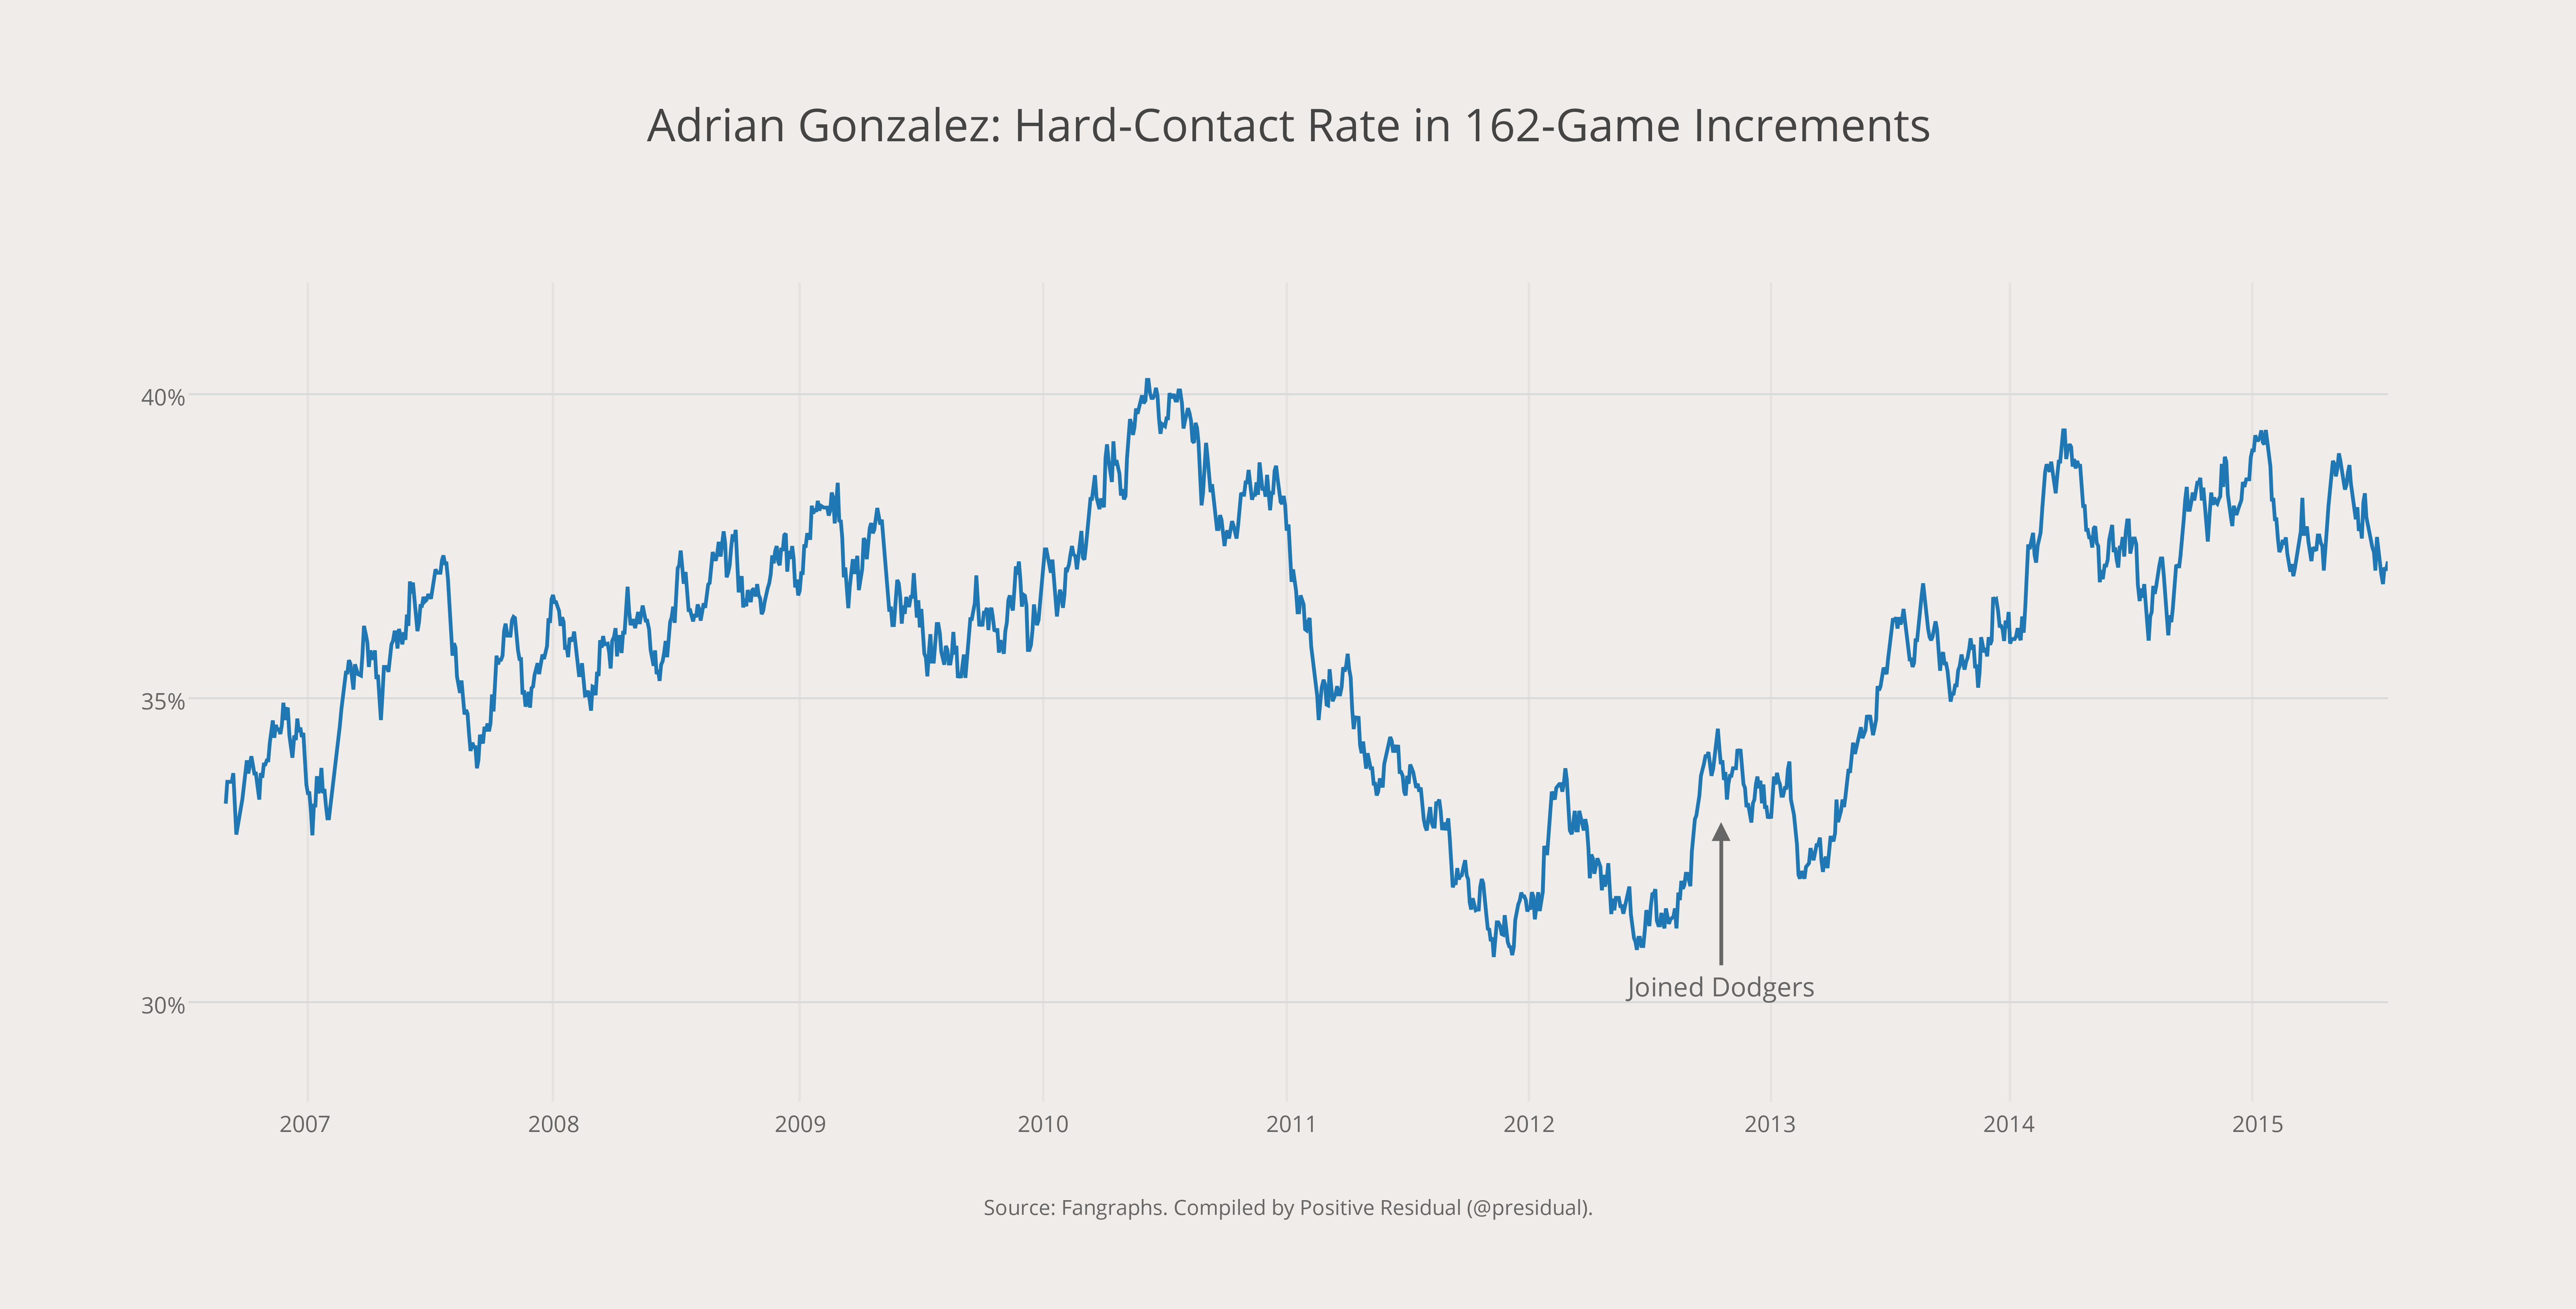 Adrian Gonzalez- Hard-Contact Rate in 162-Game Increments